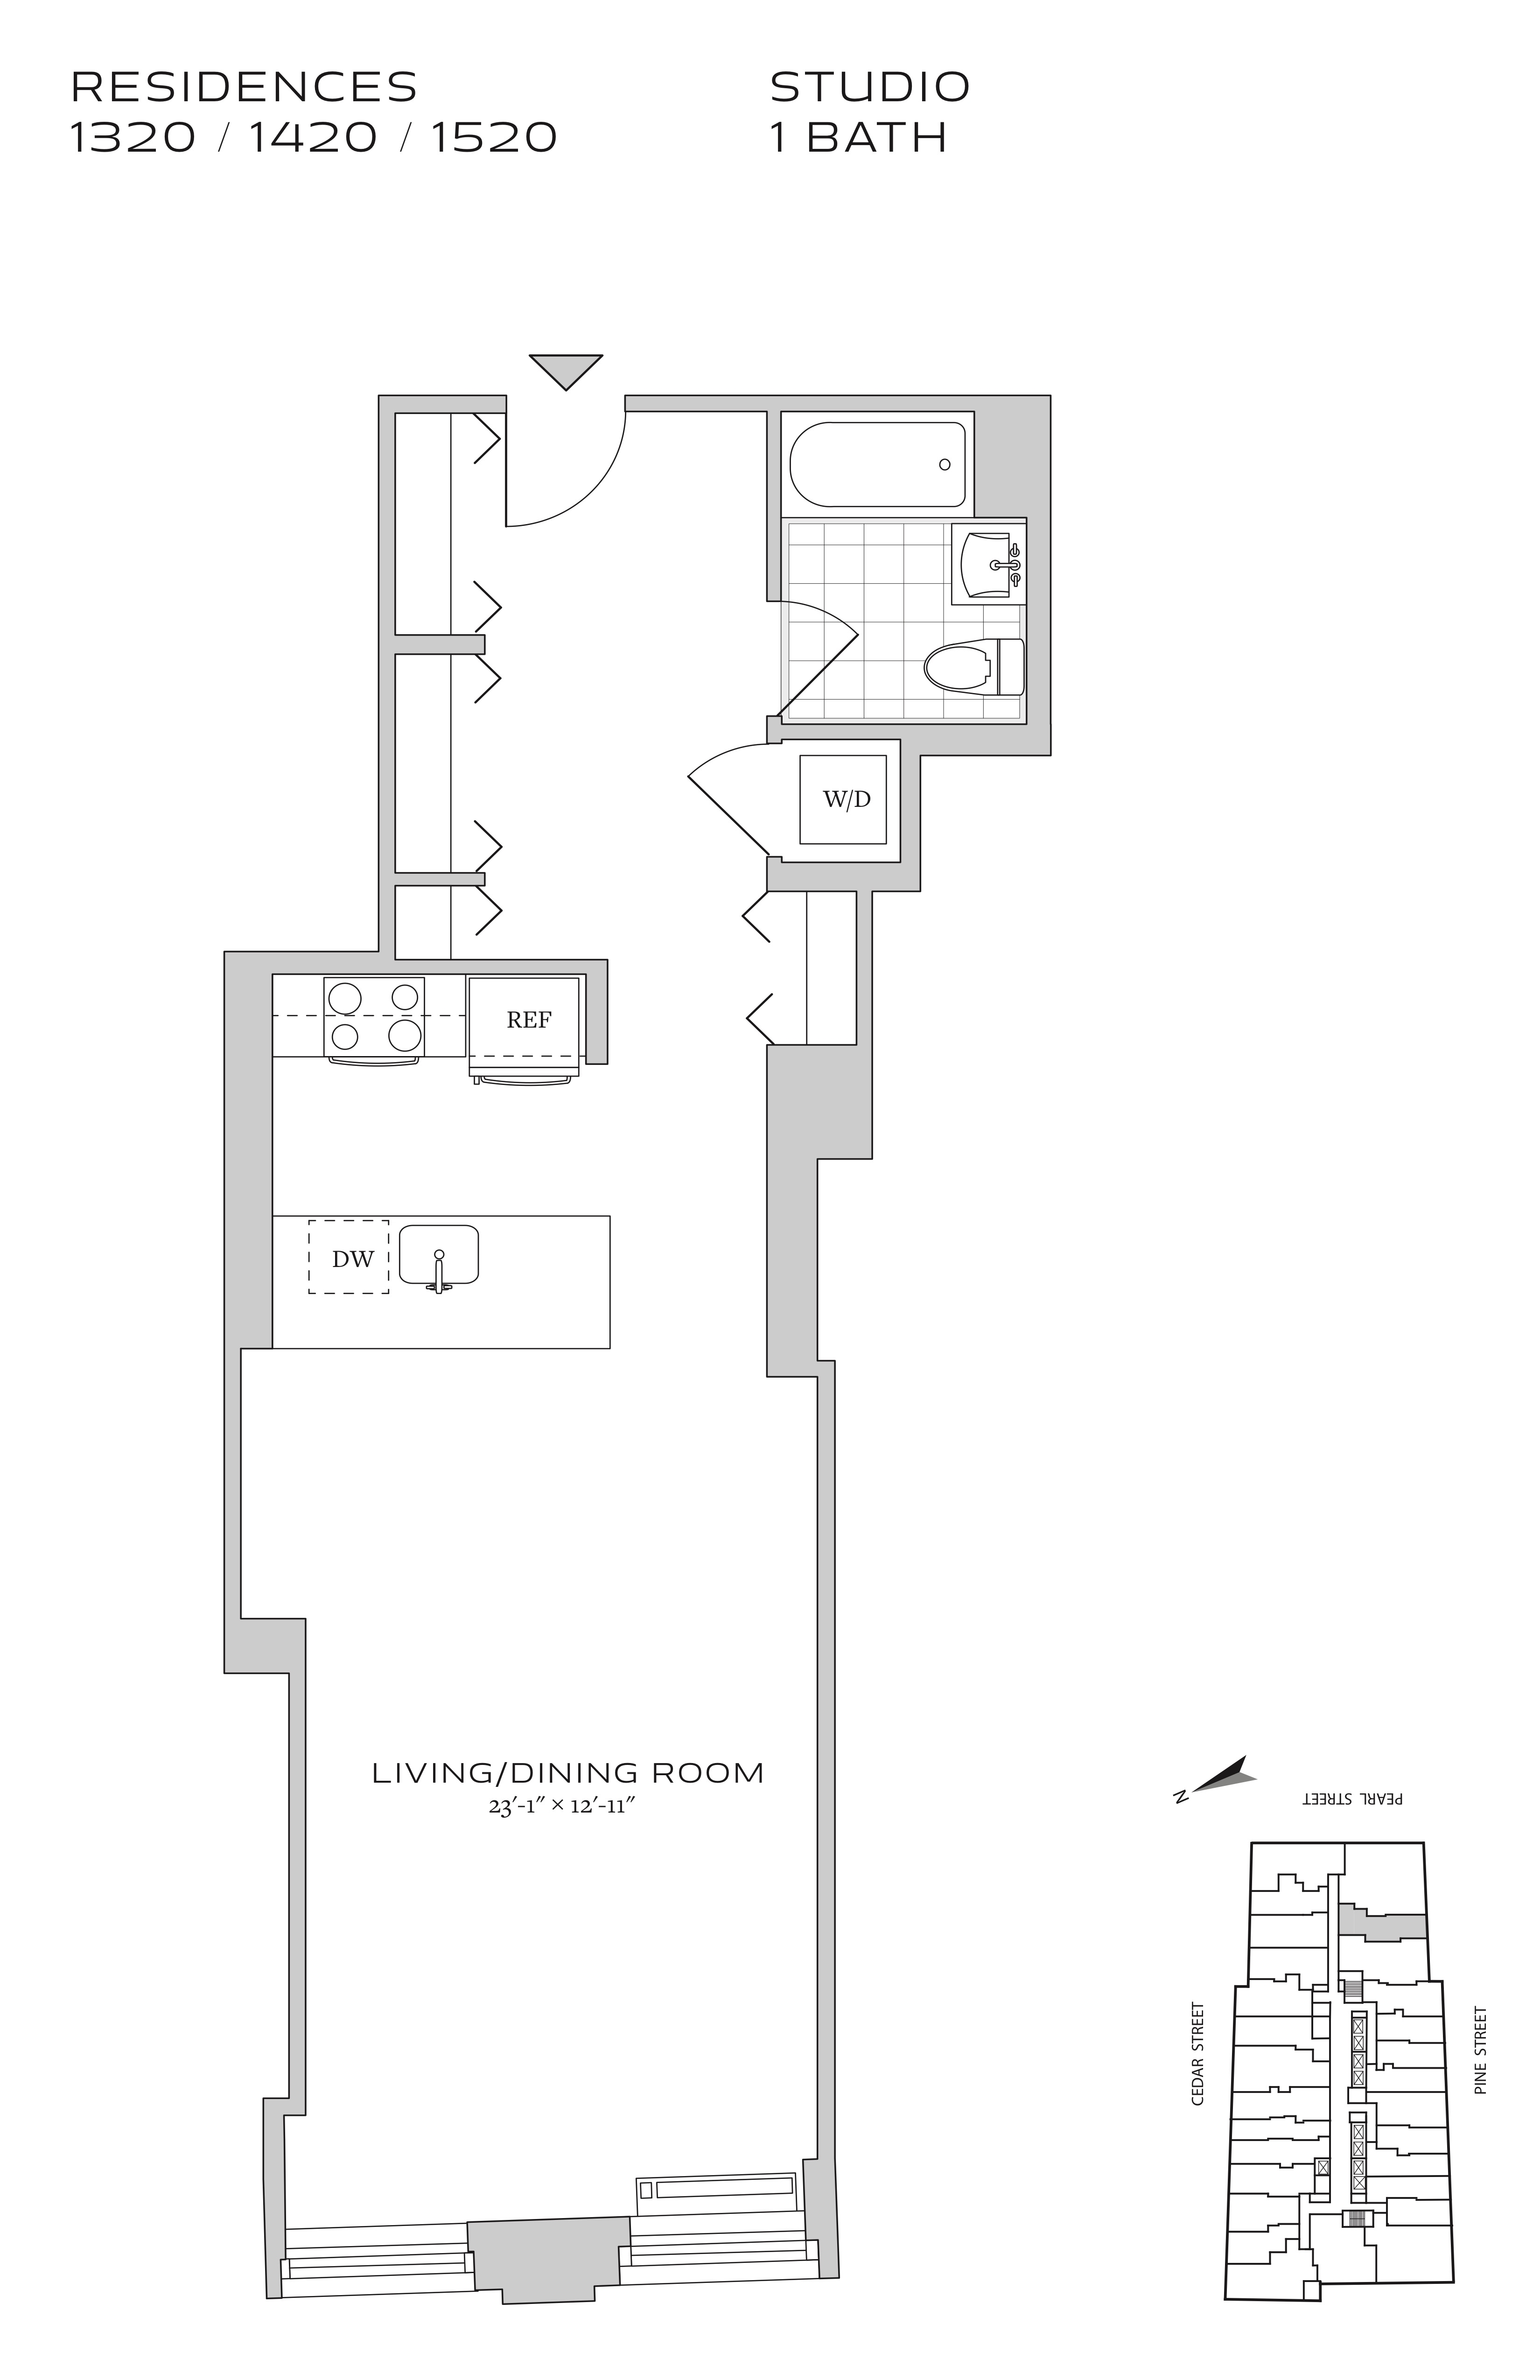 70 pine apartment floor plans new york ny for Apartment floor plans nyc